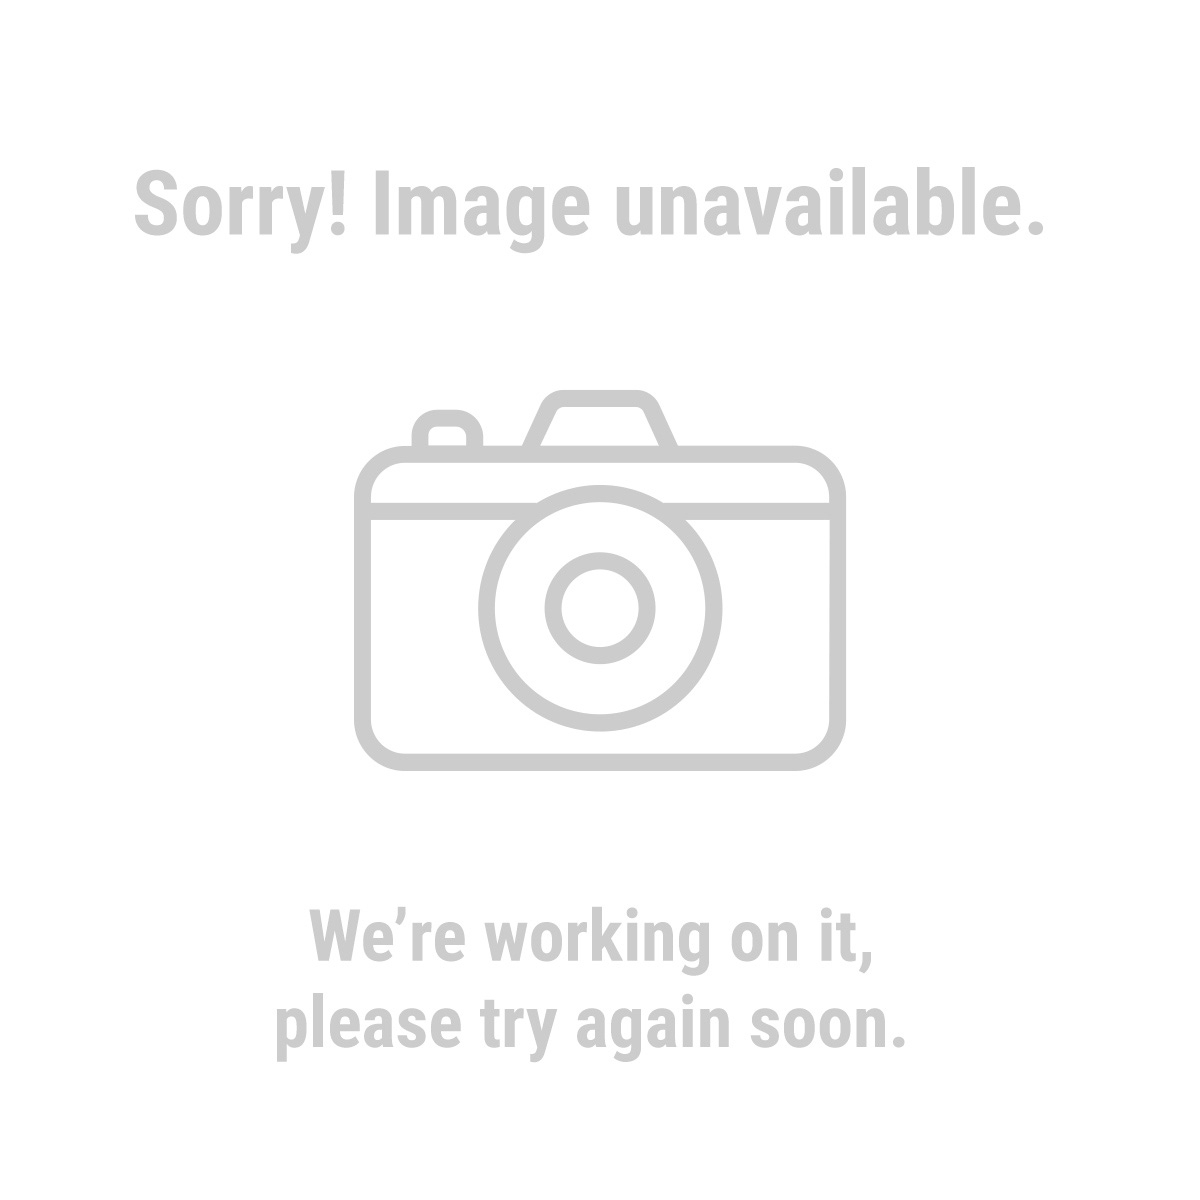 Pittsburgh® 62123 12 in. Ratchet Bar Clamp/Spreader